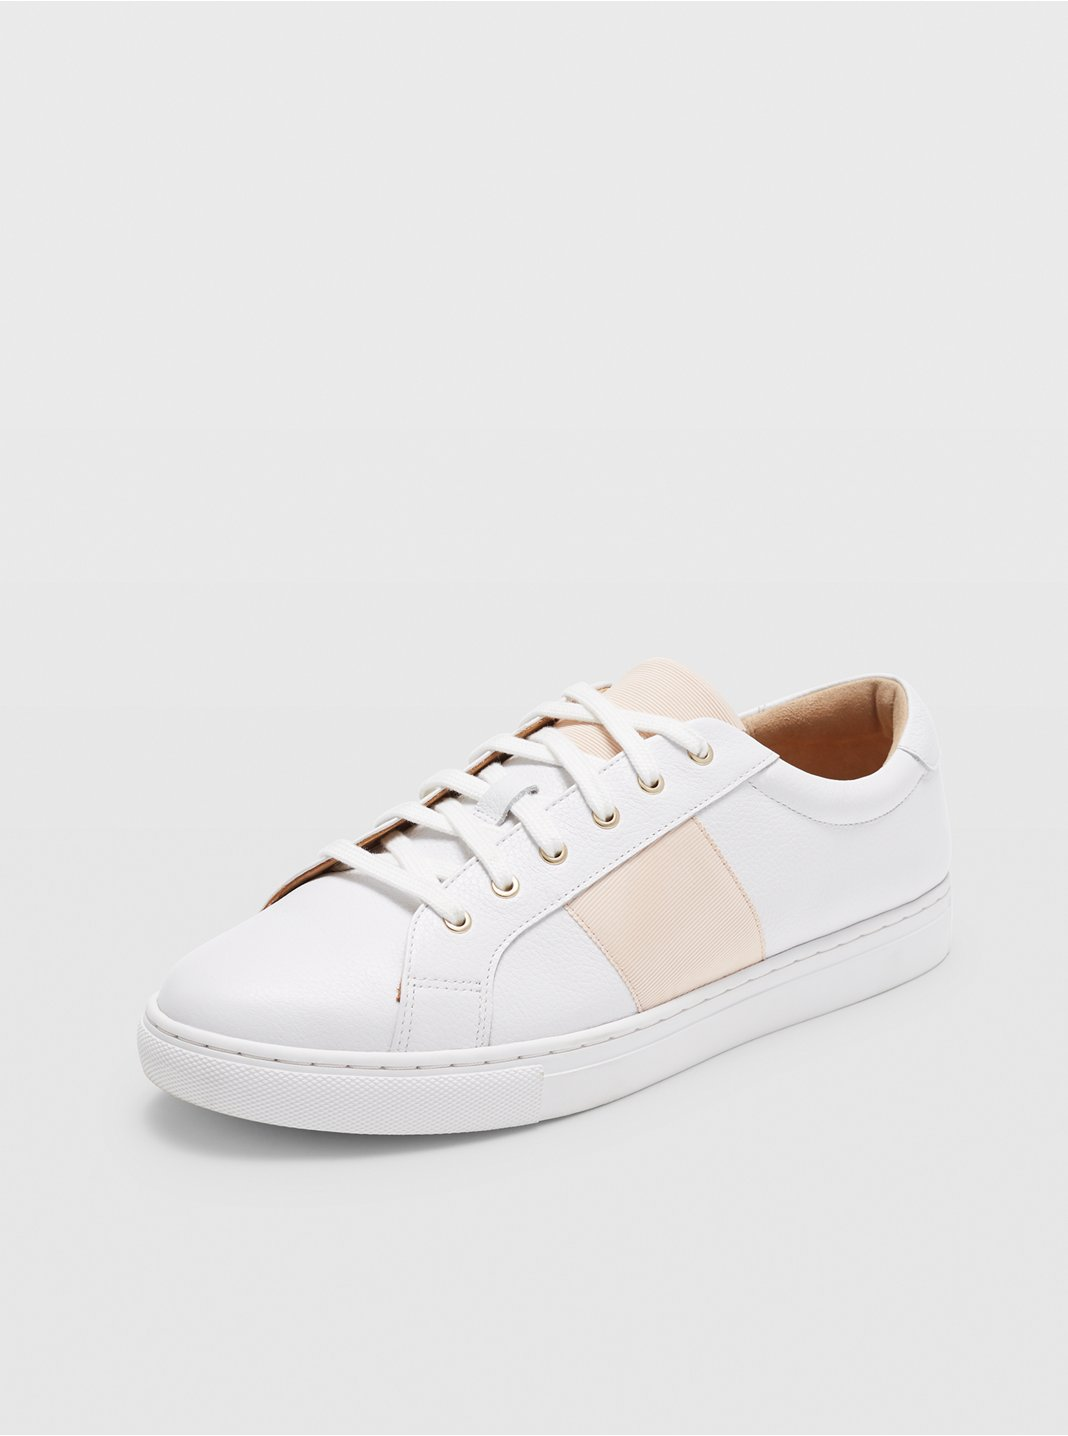 Jowenna Leather Sneaker